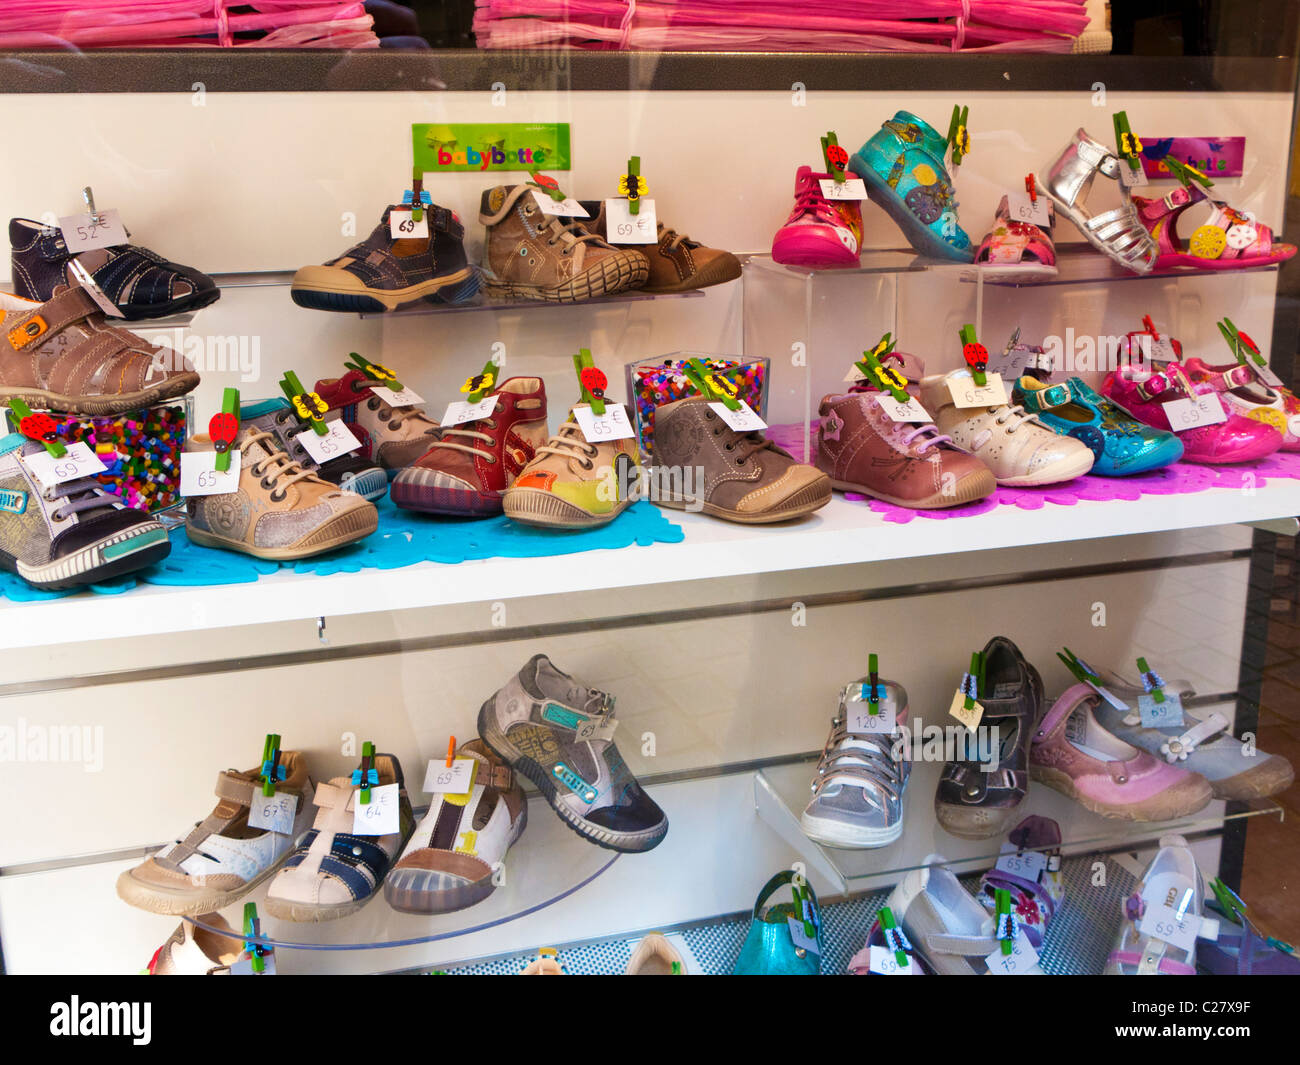 French shoe shop window display of children's shoes, France, Europe - Stock Image